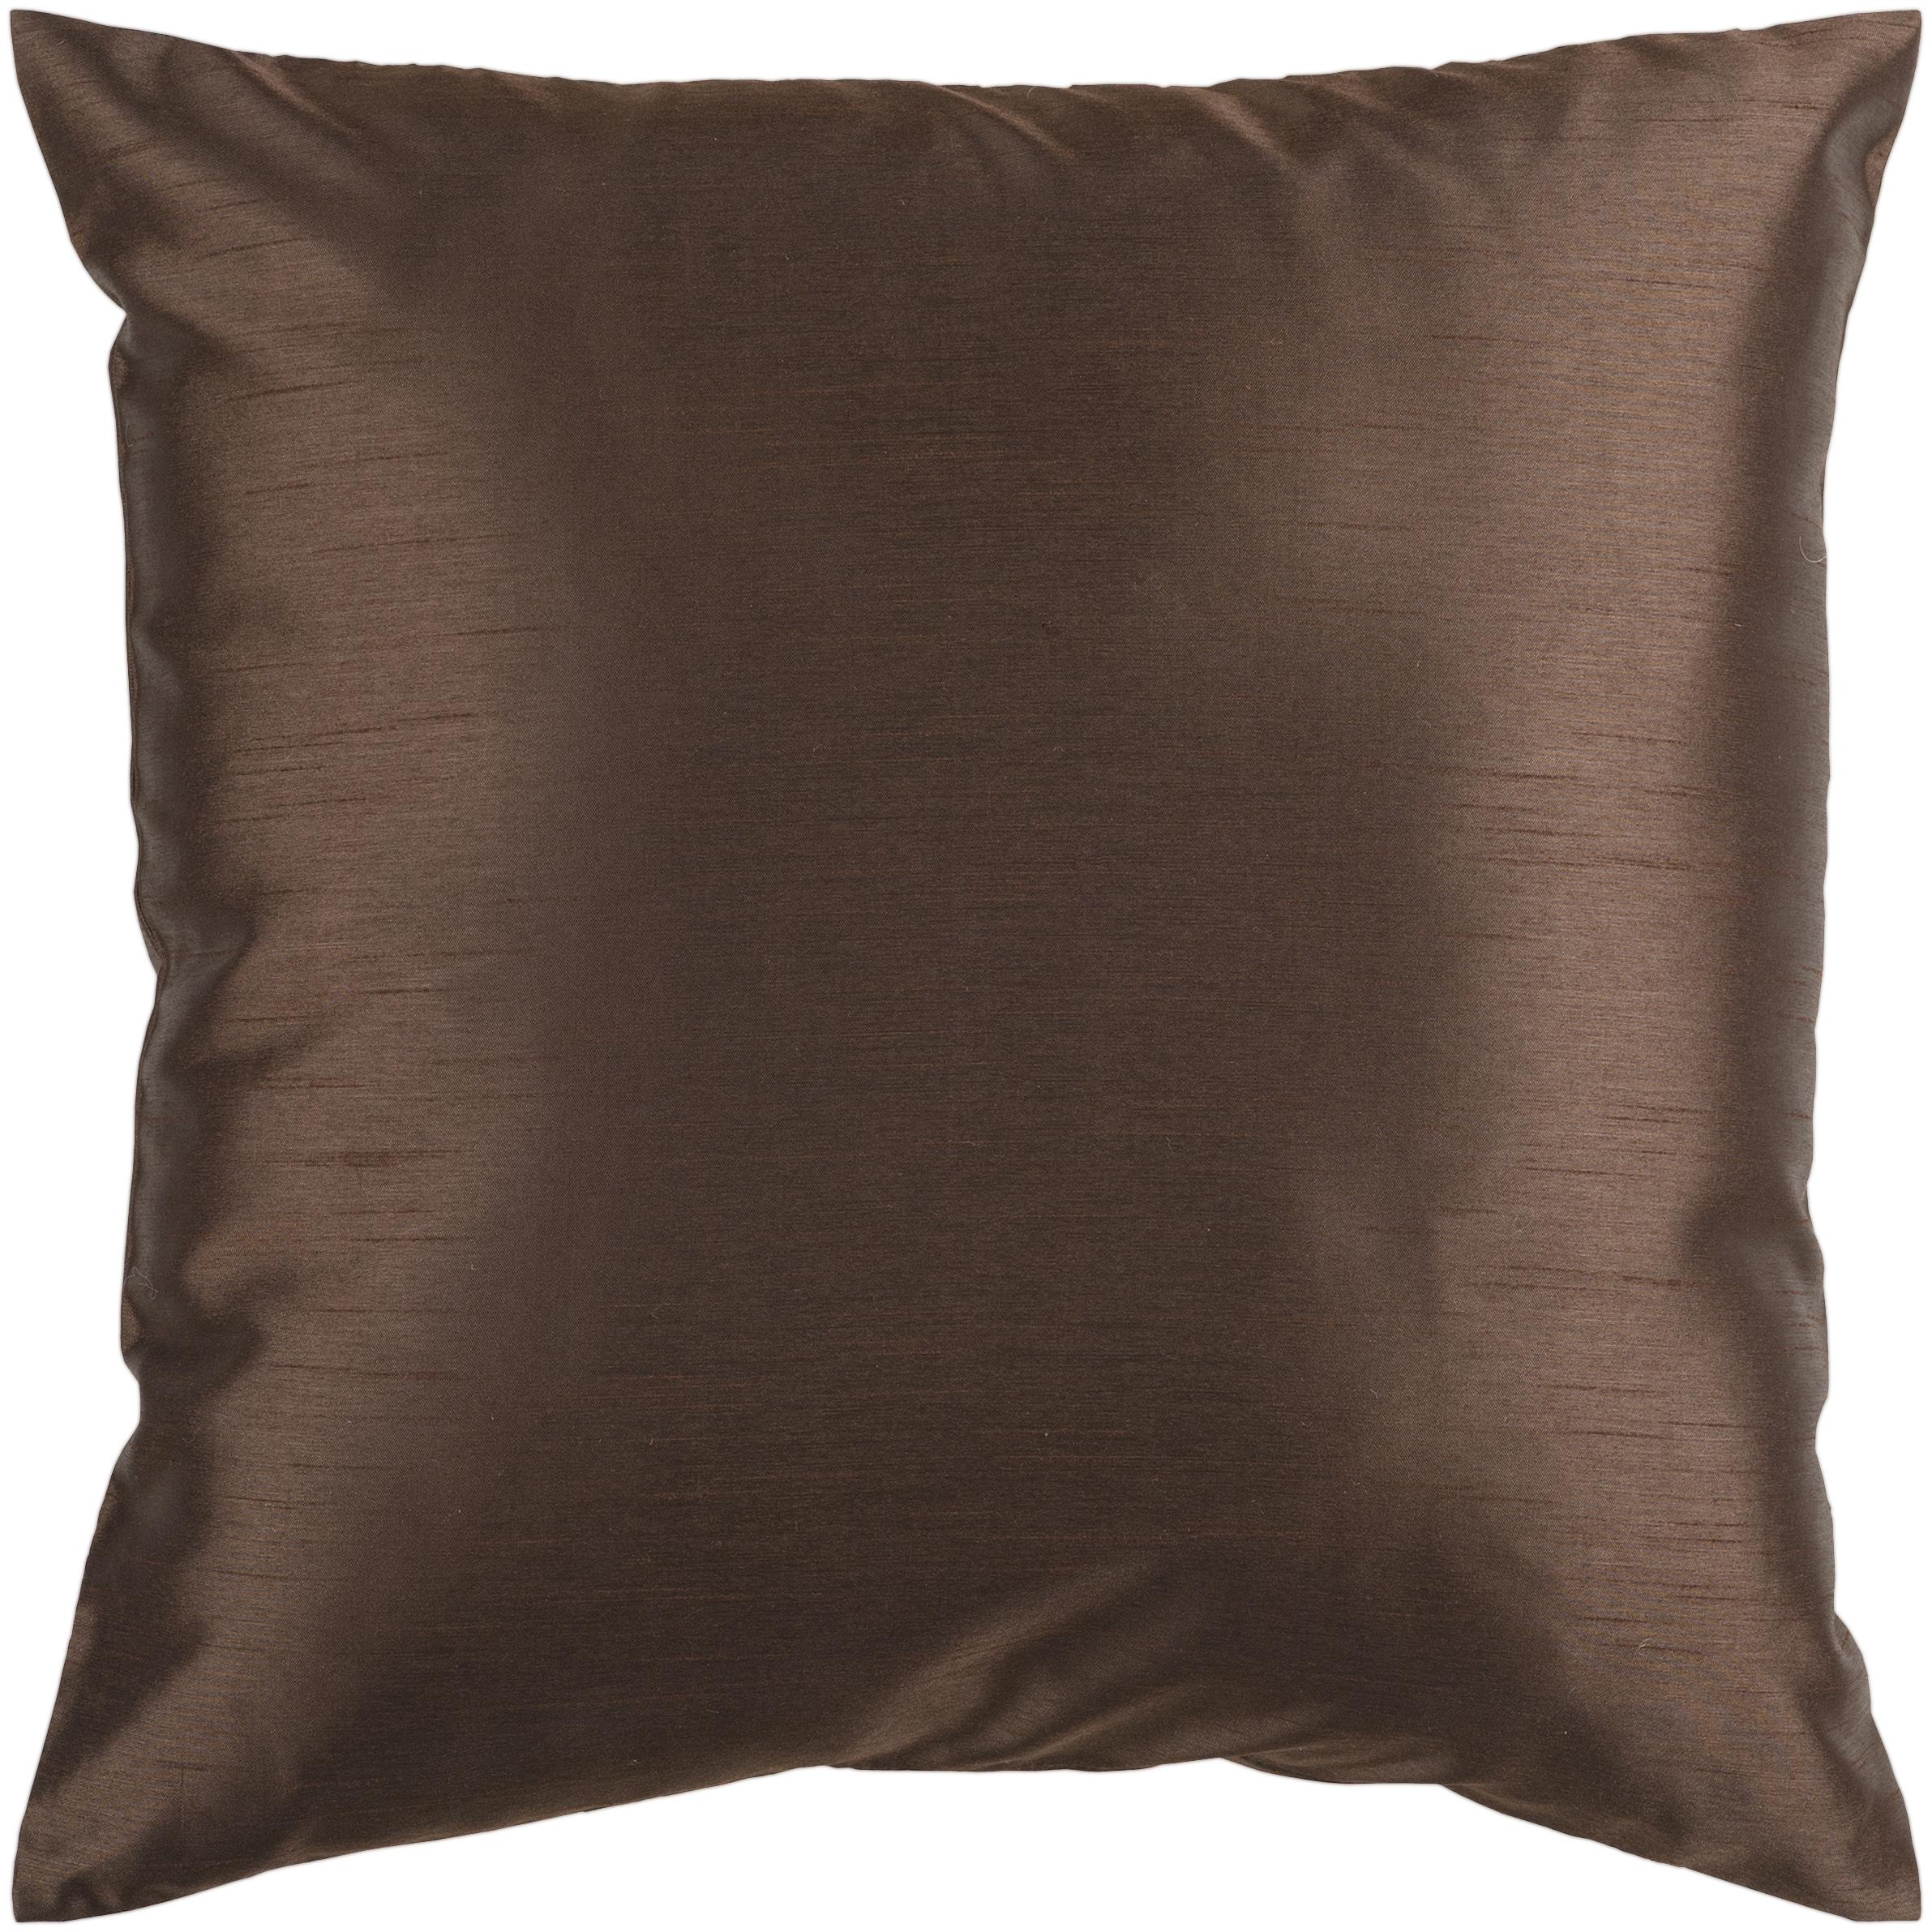 "Surya Pillows 18"" x 18"" Pillow - Item Number: HH040-1818P"